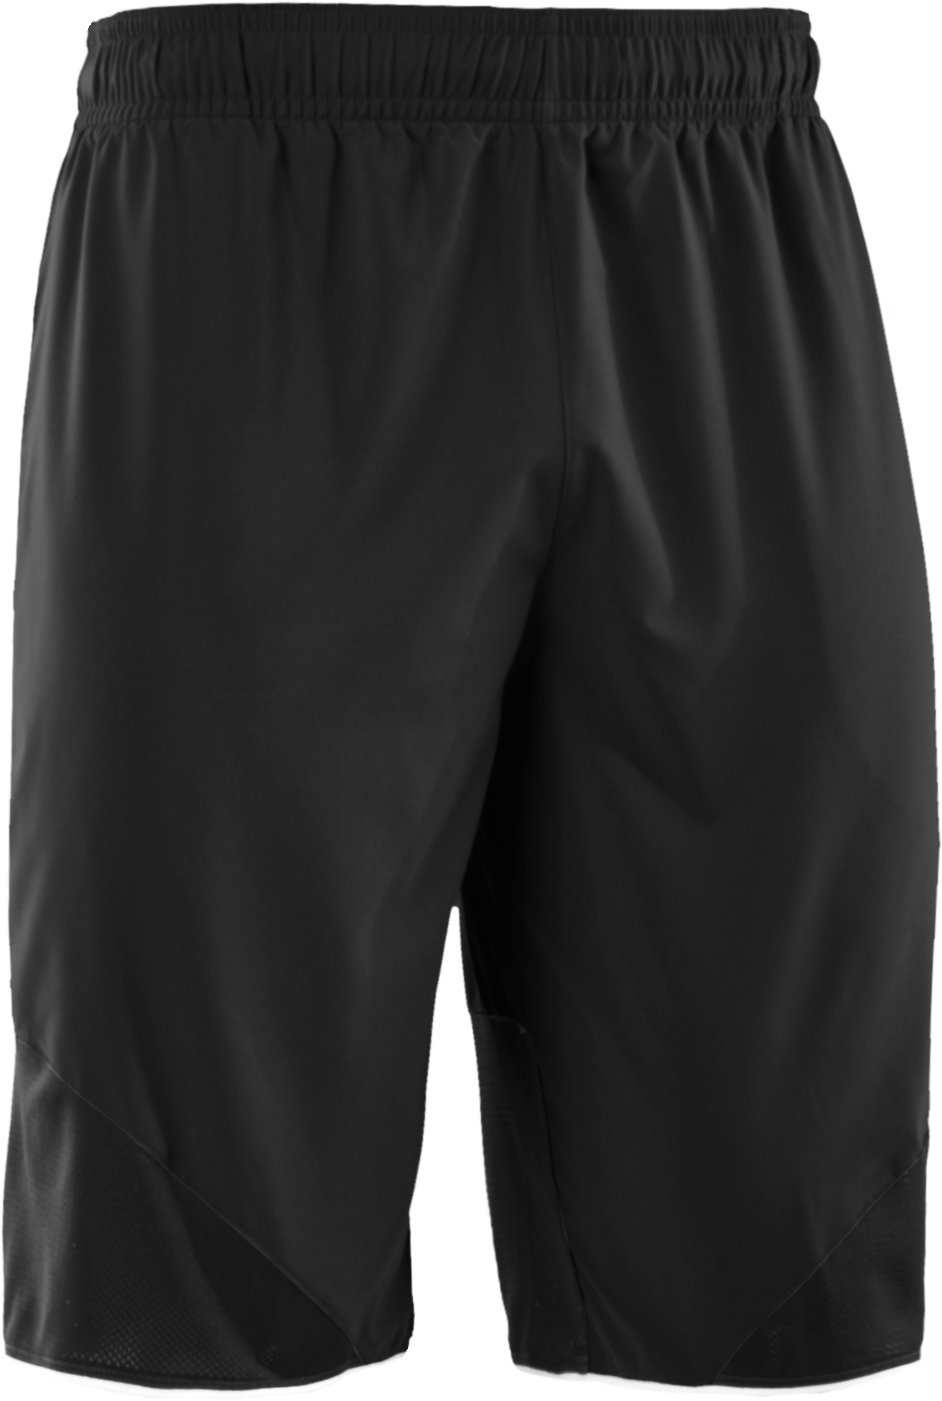 Men's UA Rickter Basketball Shorts, Black